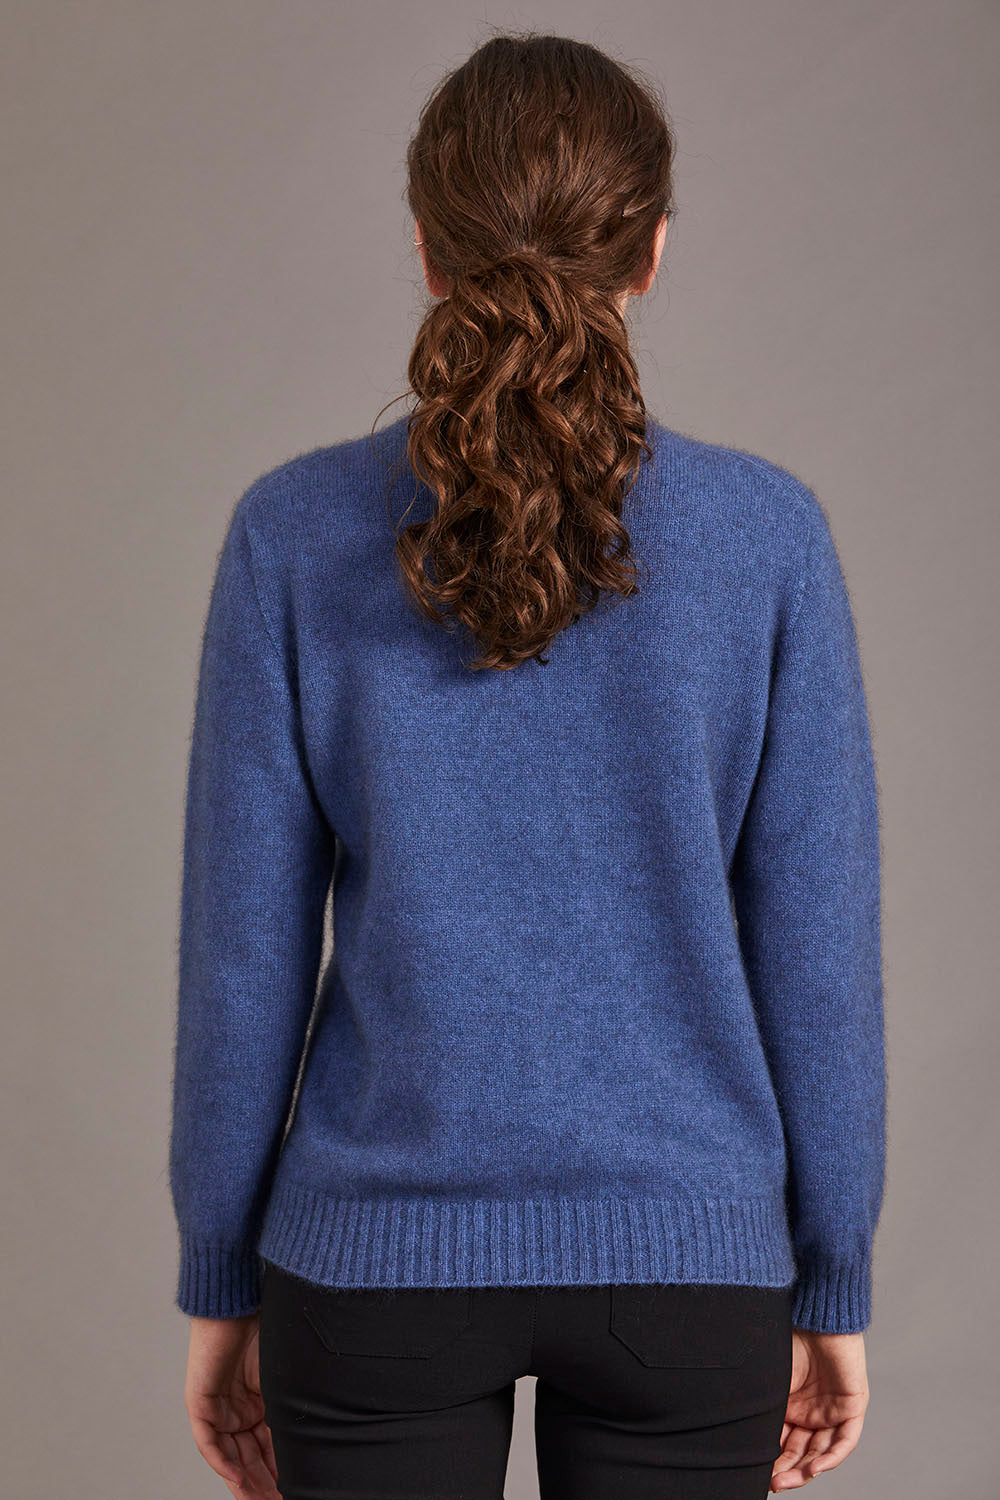 Possum Merino Crew Neck Jersey with Lace Detail